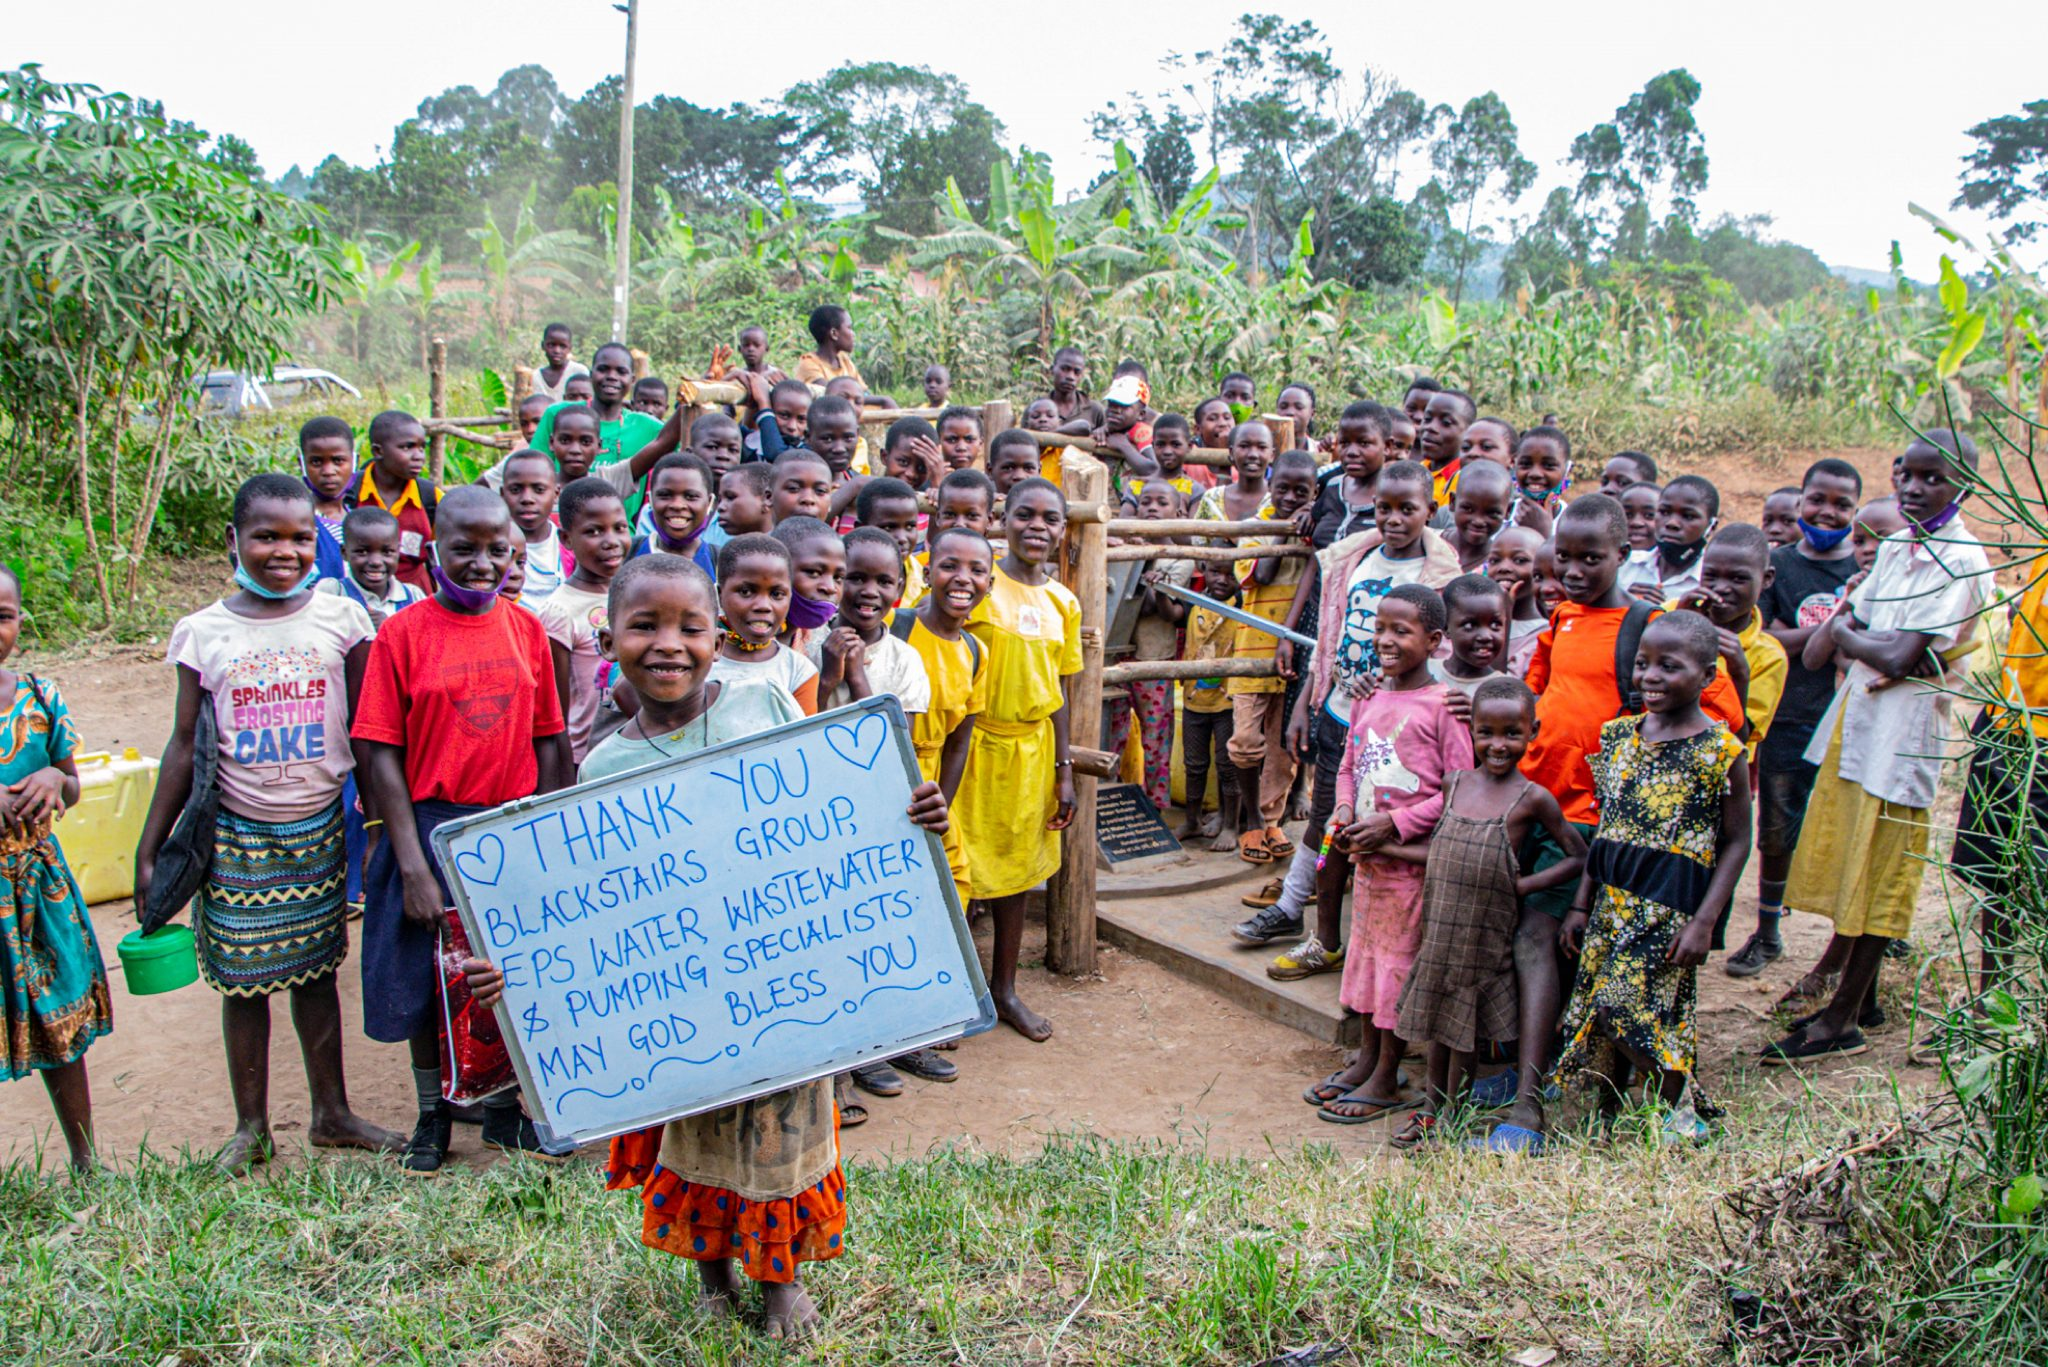 Happy smiling faces as EPS restores water well in Uganda